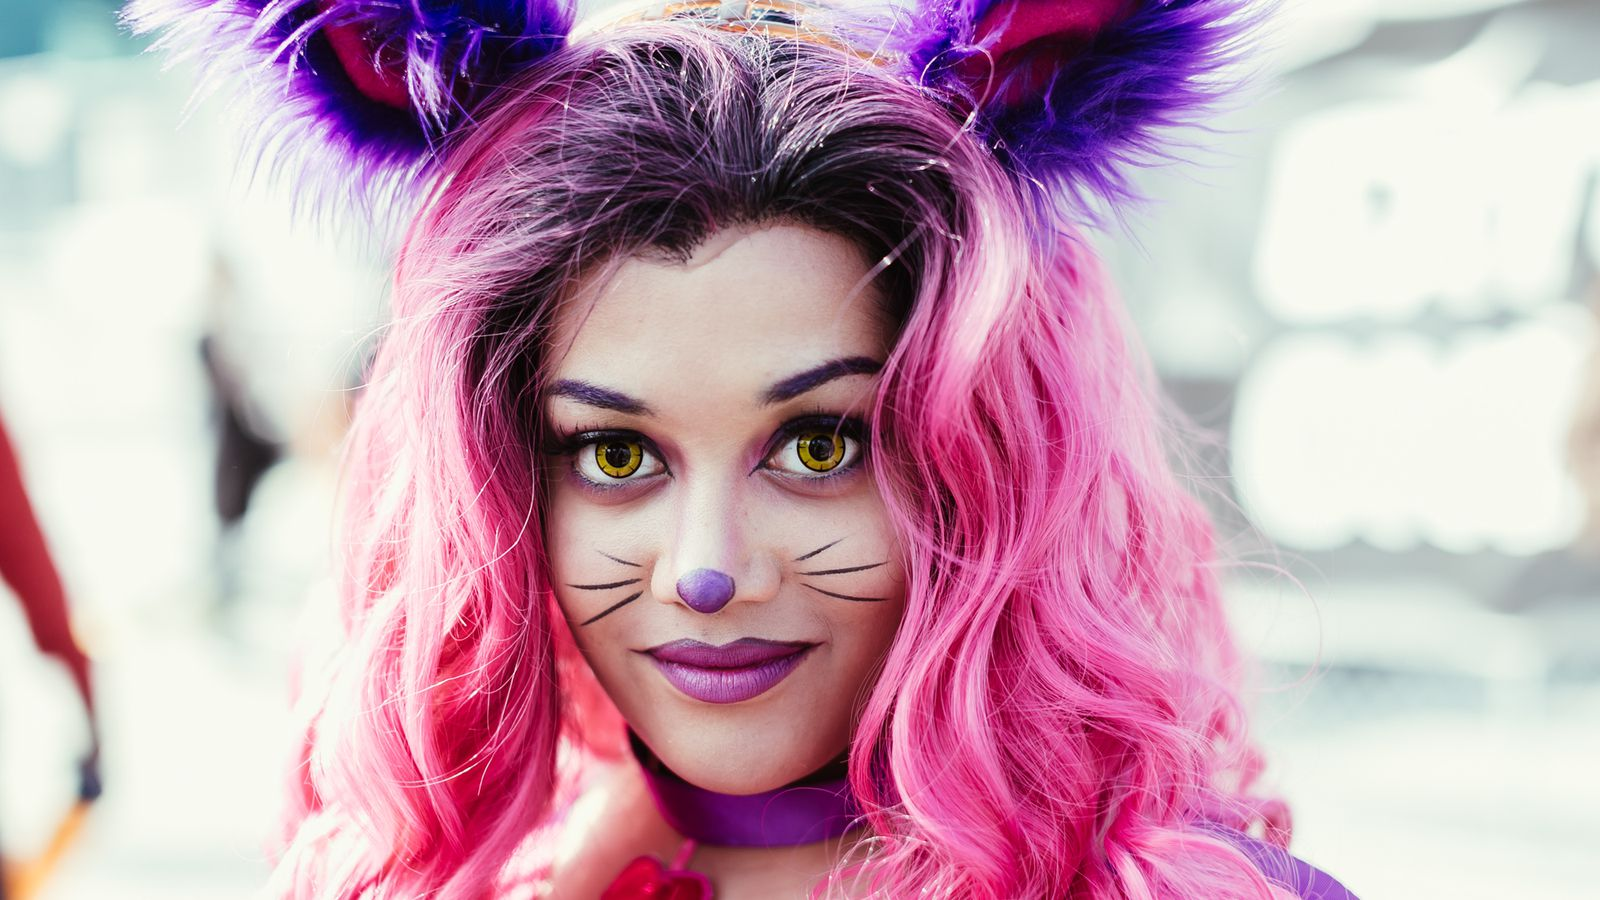 21 crazy halloween makeup looks to steal from comic con racked ny